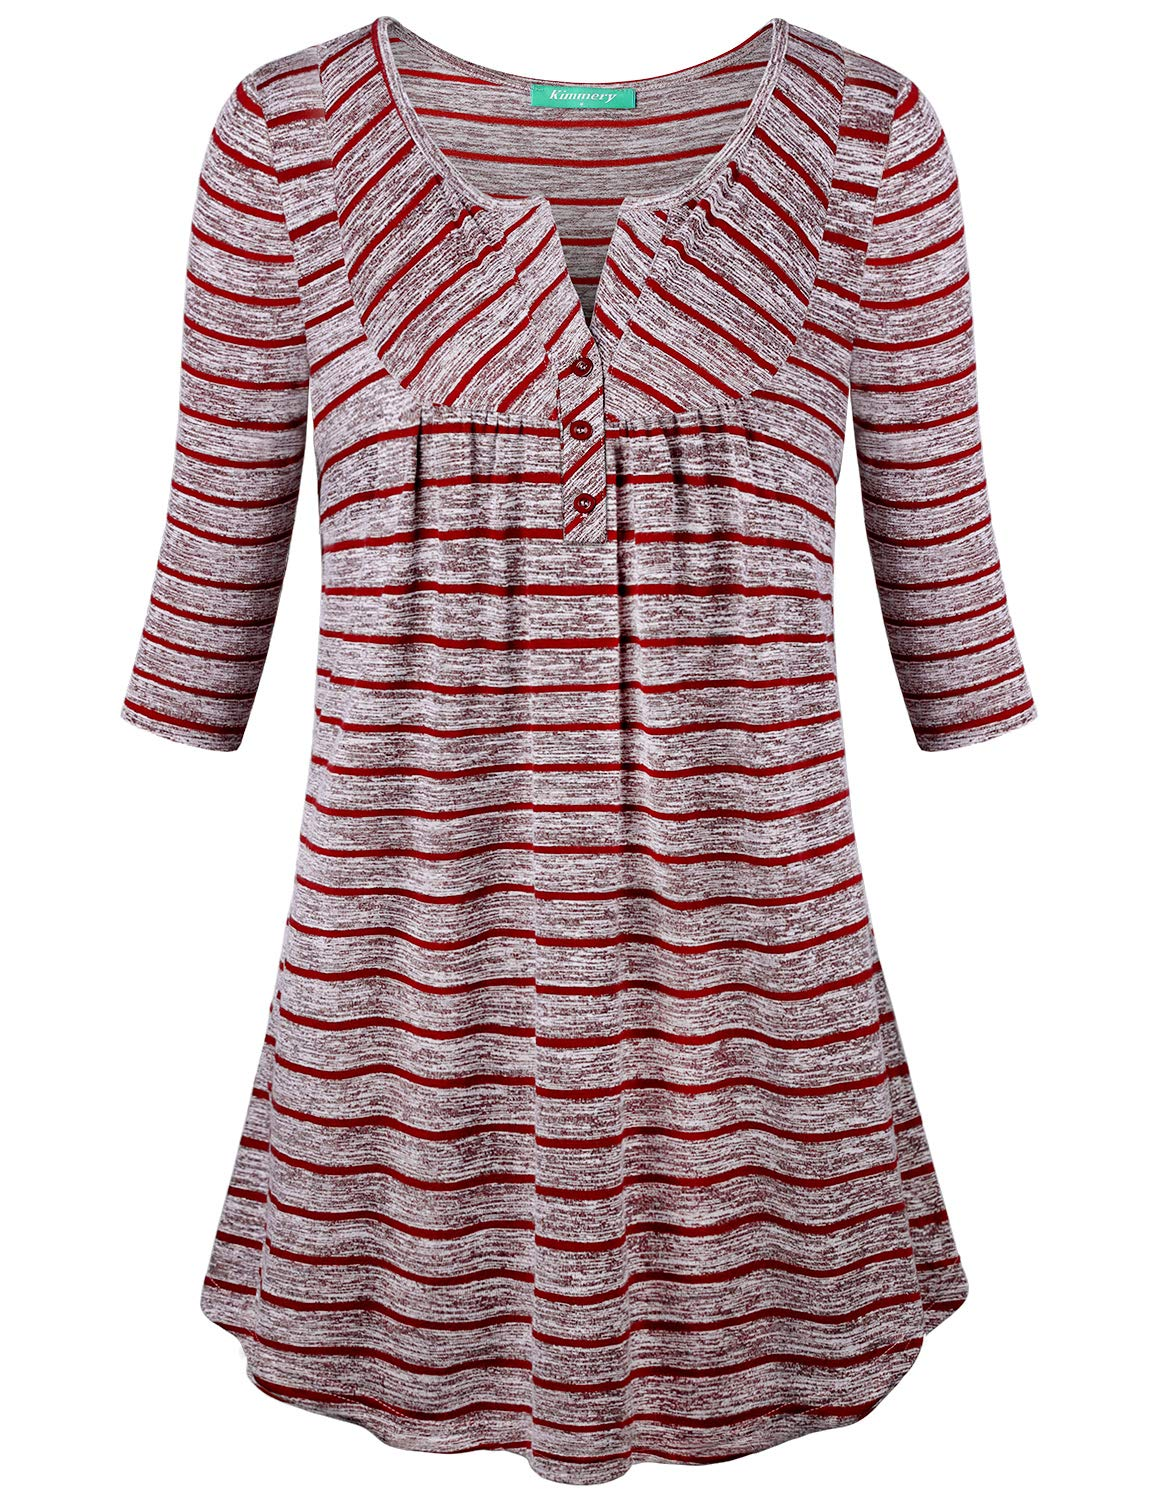 Cotton Tunic,Kimmery Womens Shirts Cute Half Sleeve Flared Hem Loose Colorful Striped Trendy Blouse Plus Size Soft and Comfy Tunics Top Wine Red XX-Large